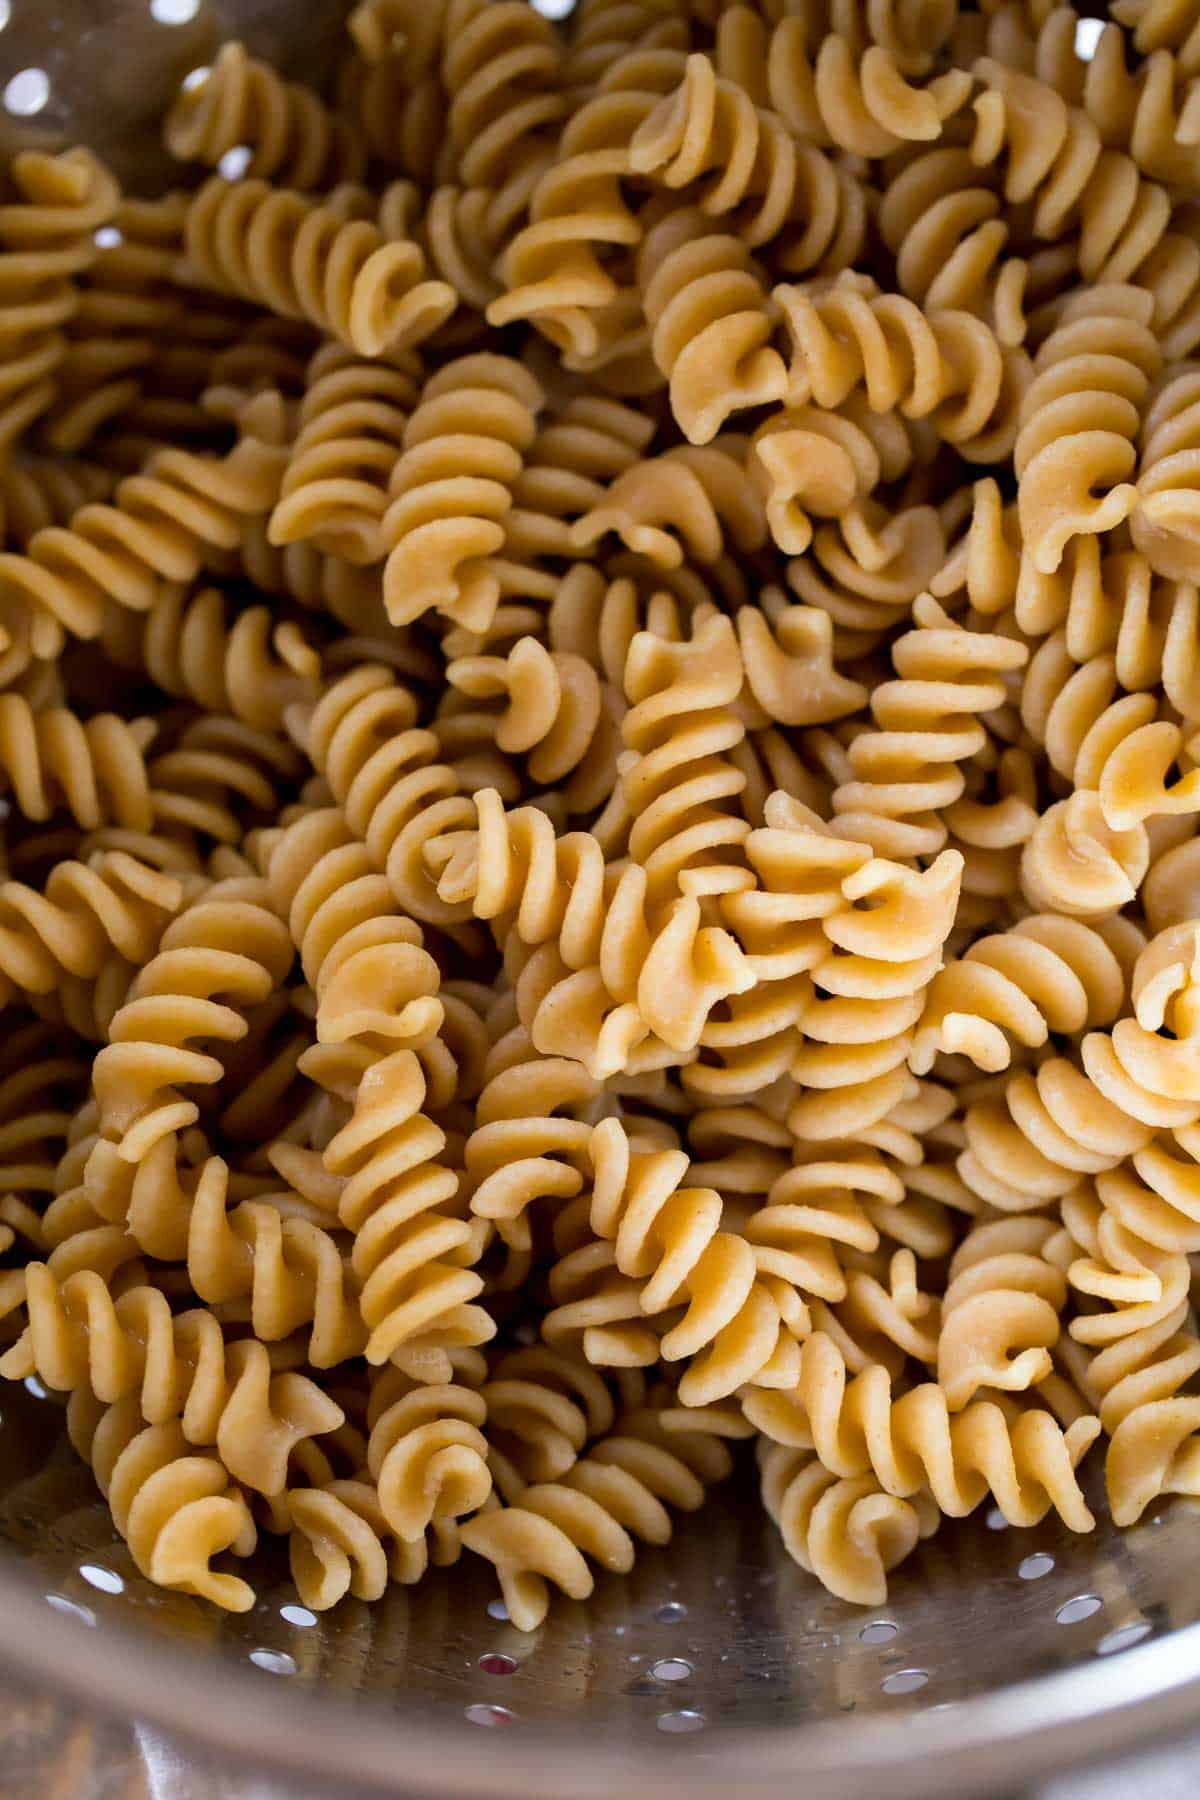 Cooked whole wheat pasta in a colander.